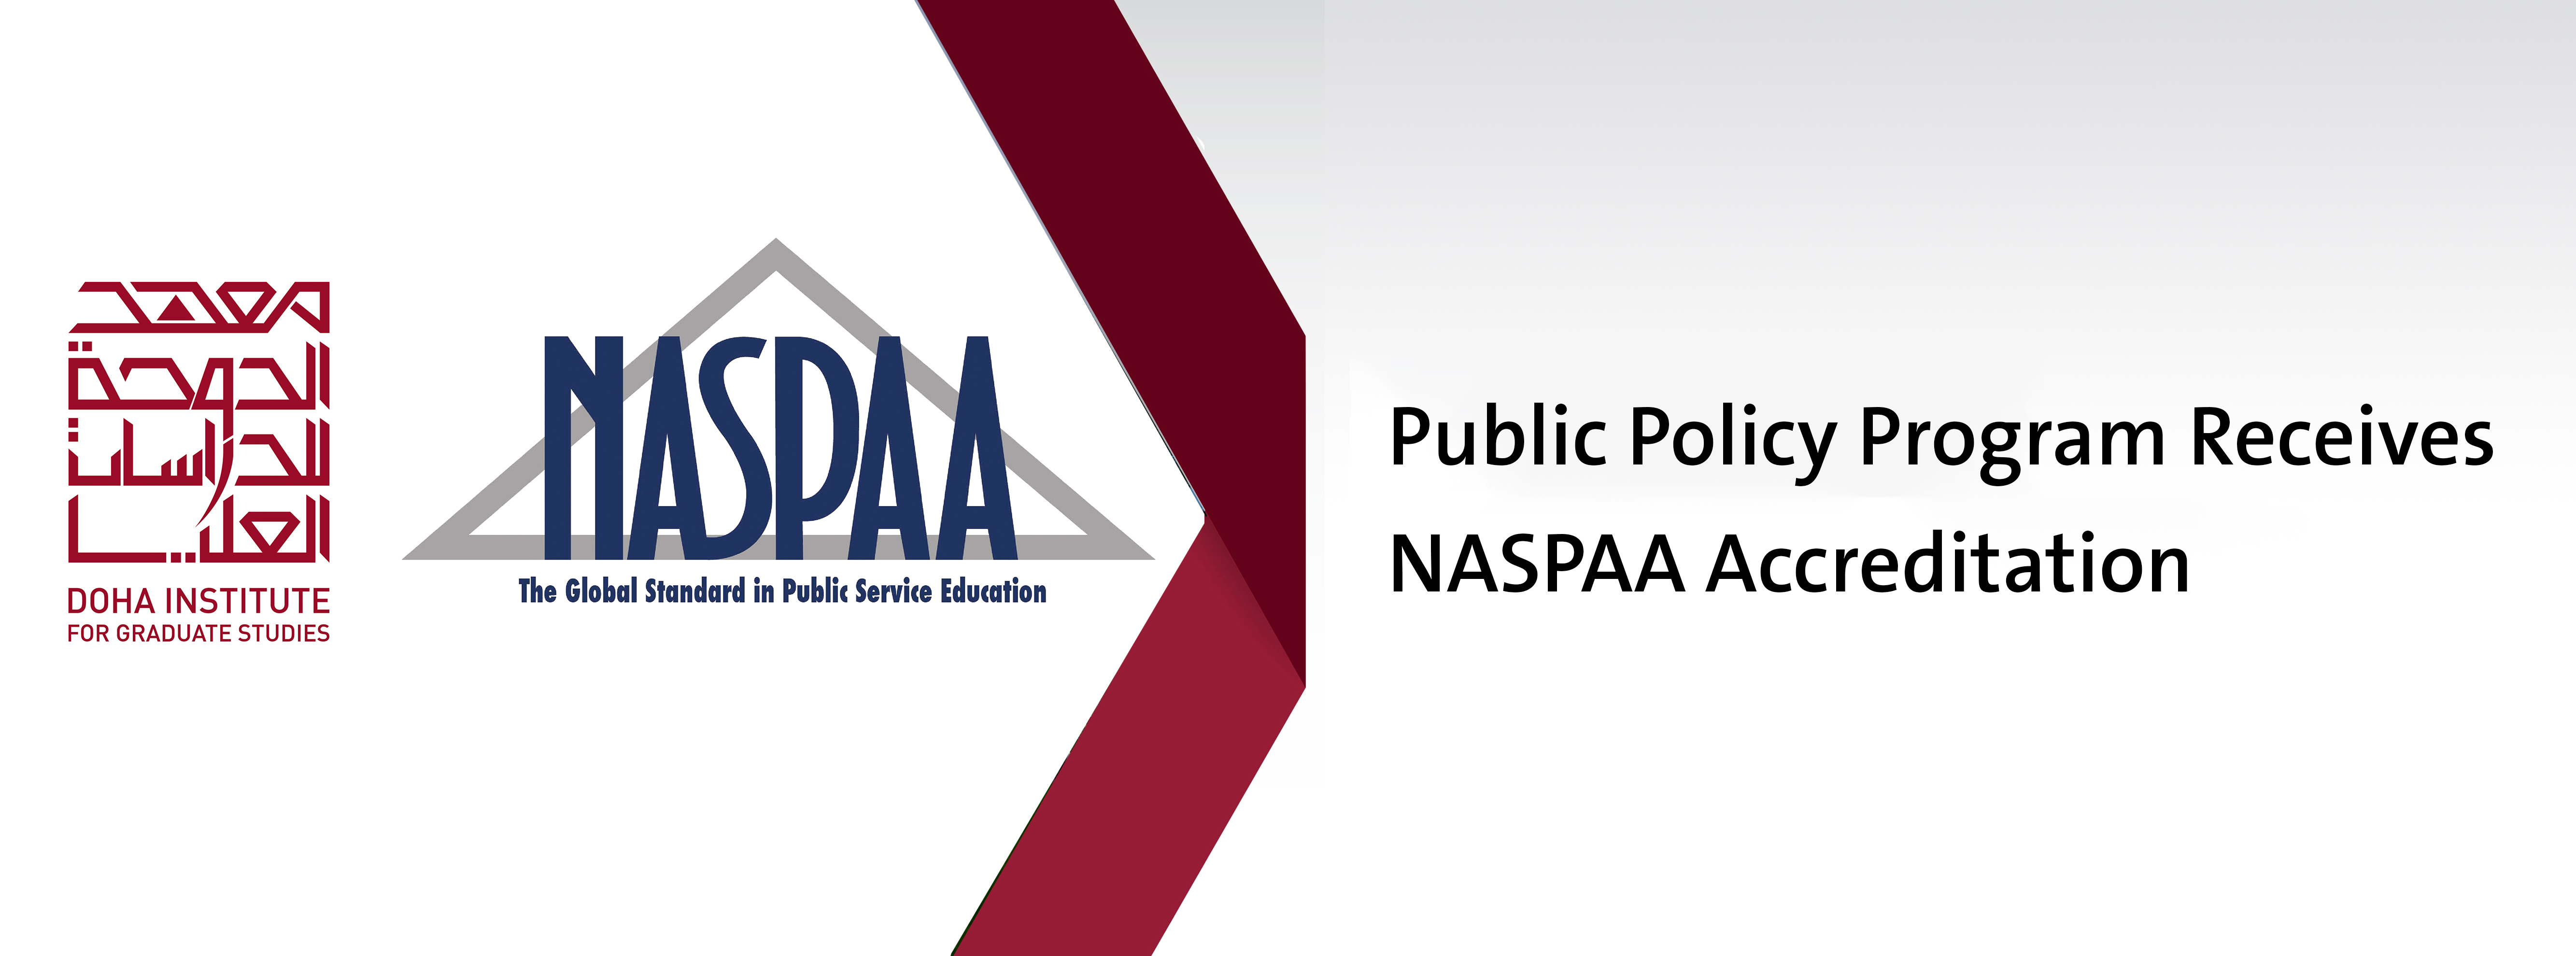 NASPAA Accreditation for Doha Institute Public Policy Program